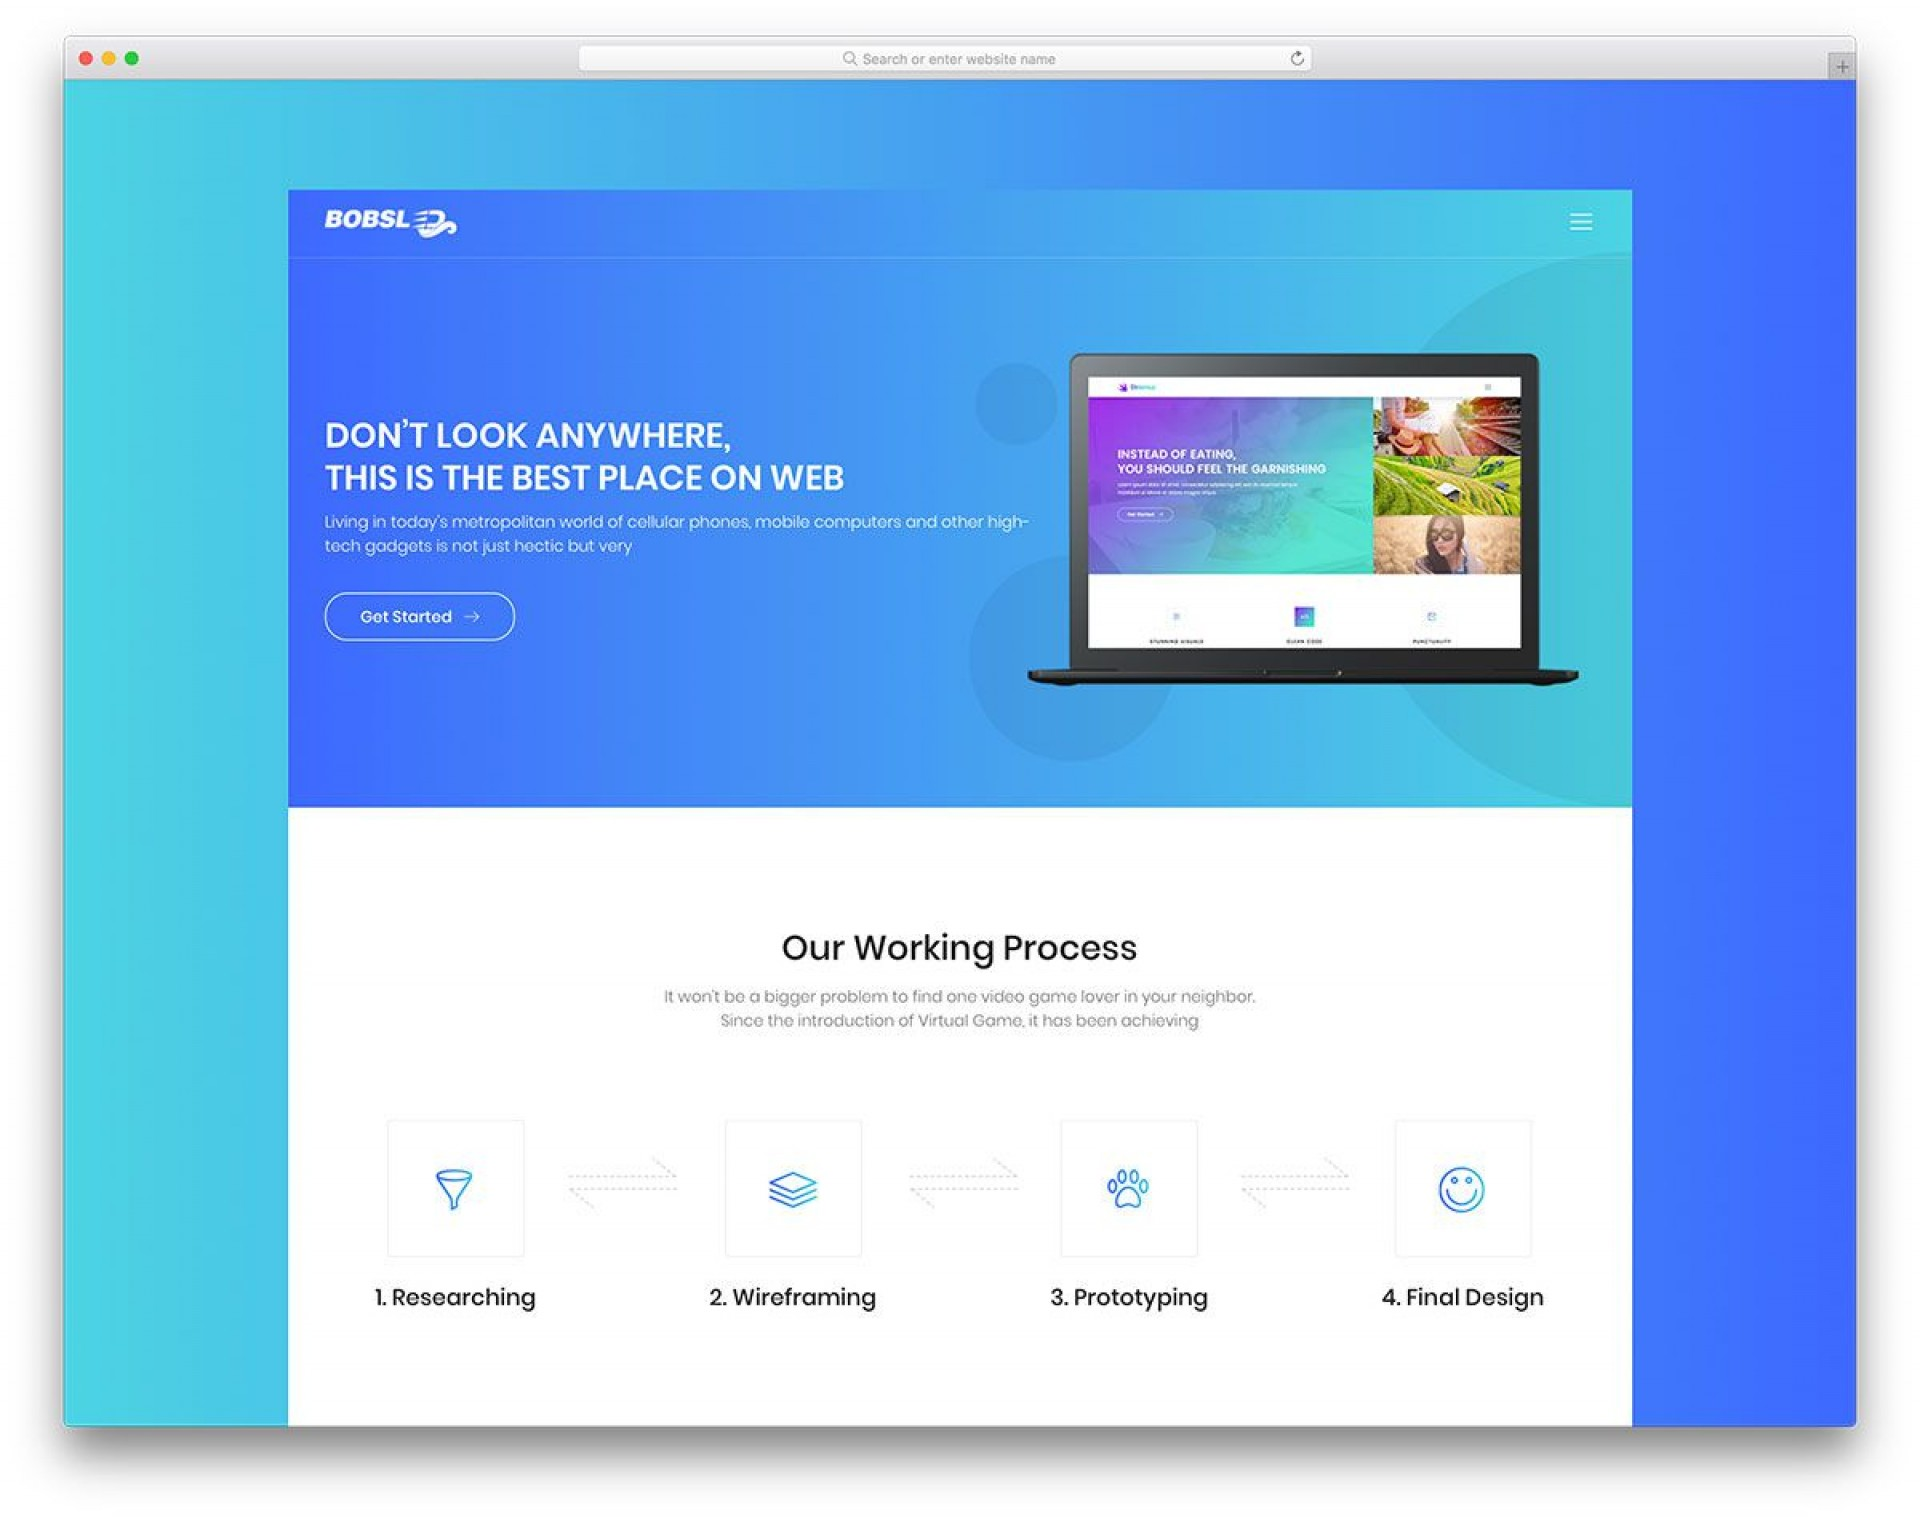 004 Amazing Html Landing Page Template Free Inspiration  Responsive Download Simple Best1920